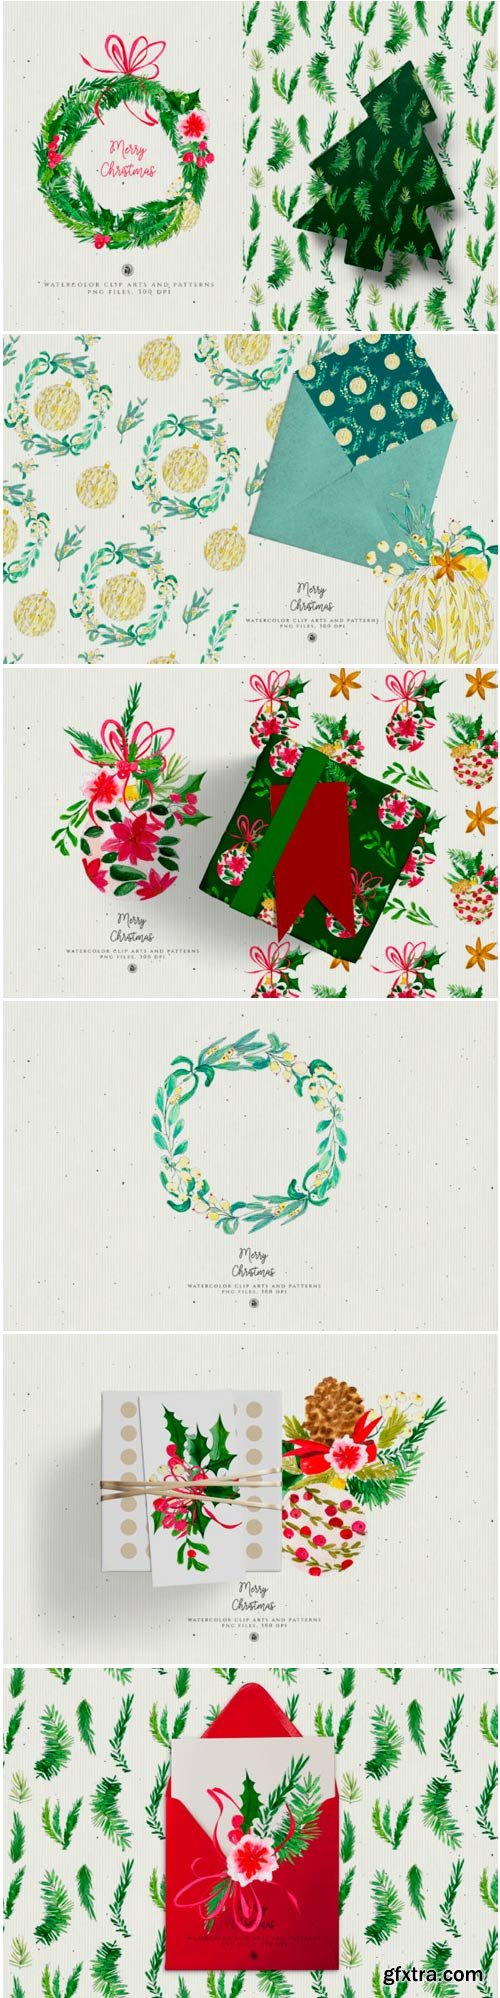 Christmas Watercolor Decorations 1766692